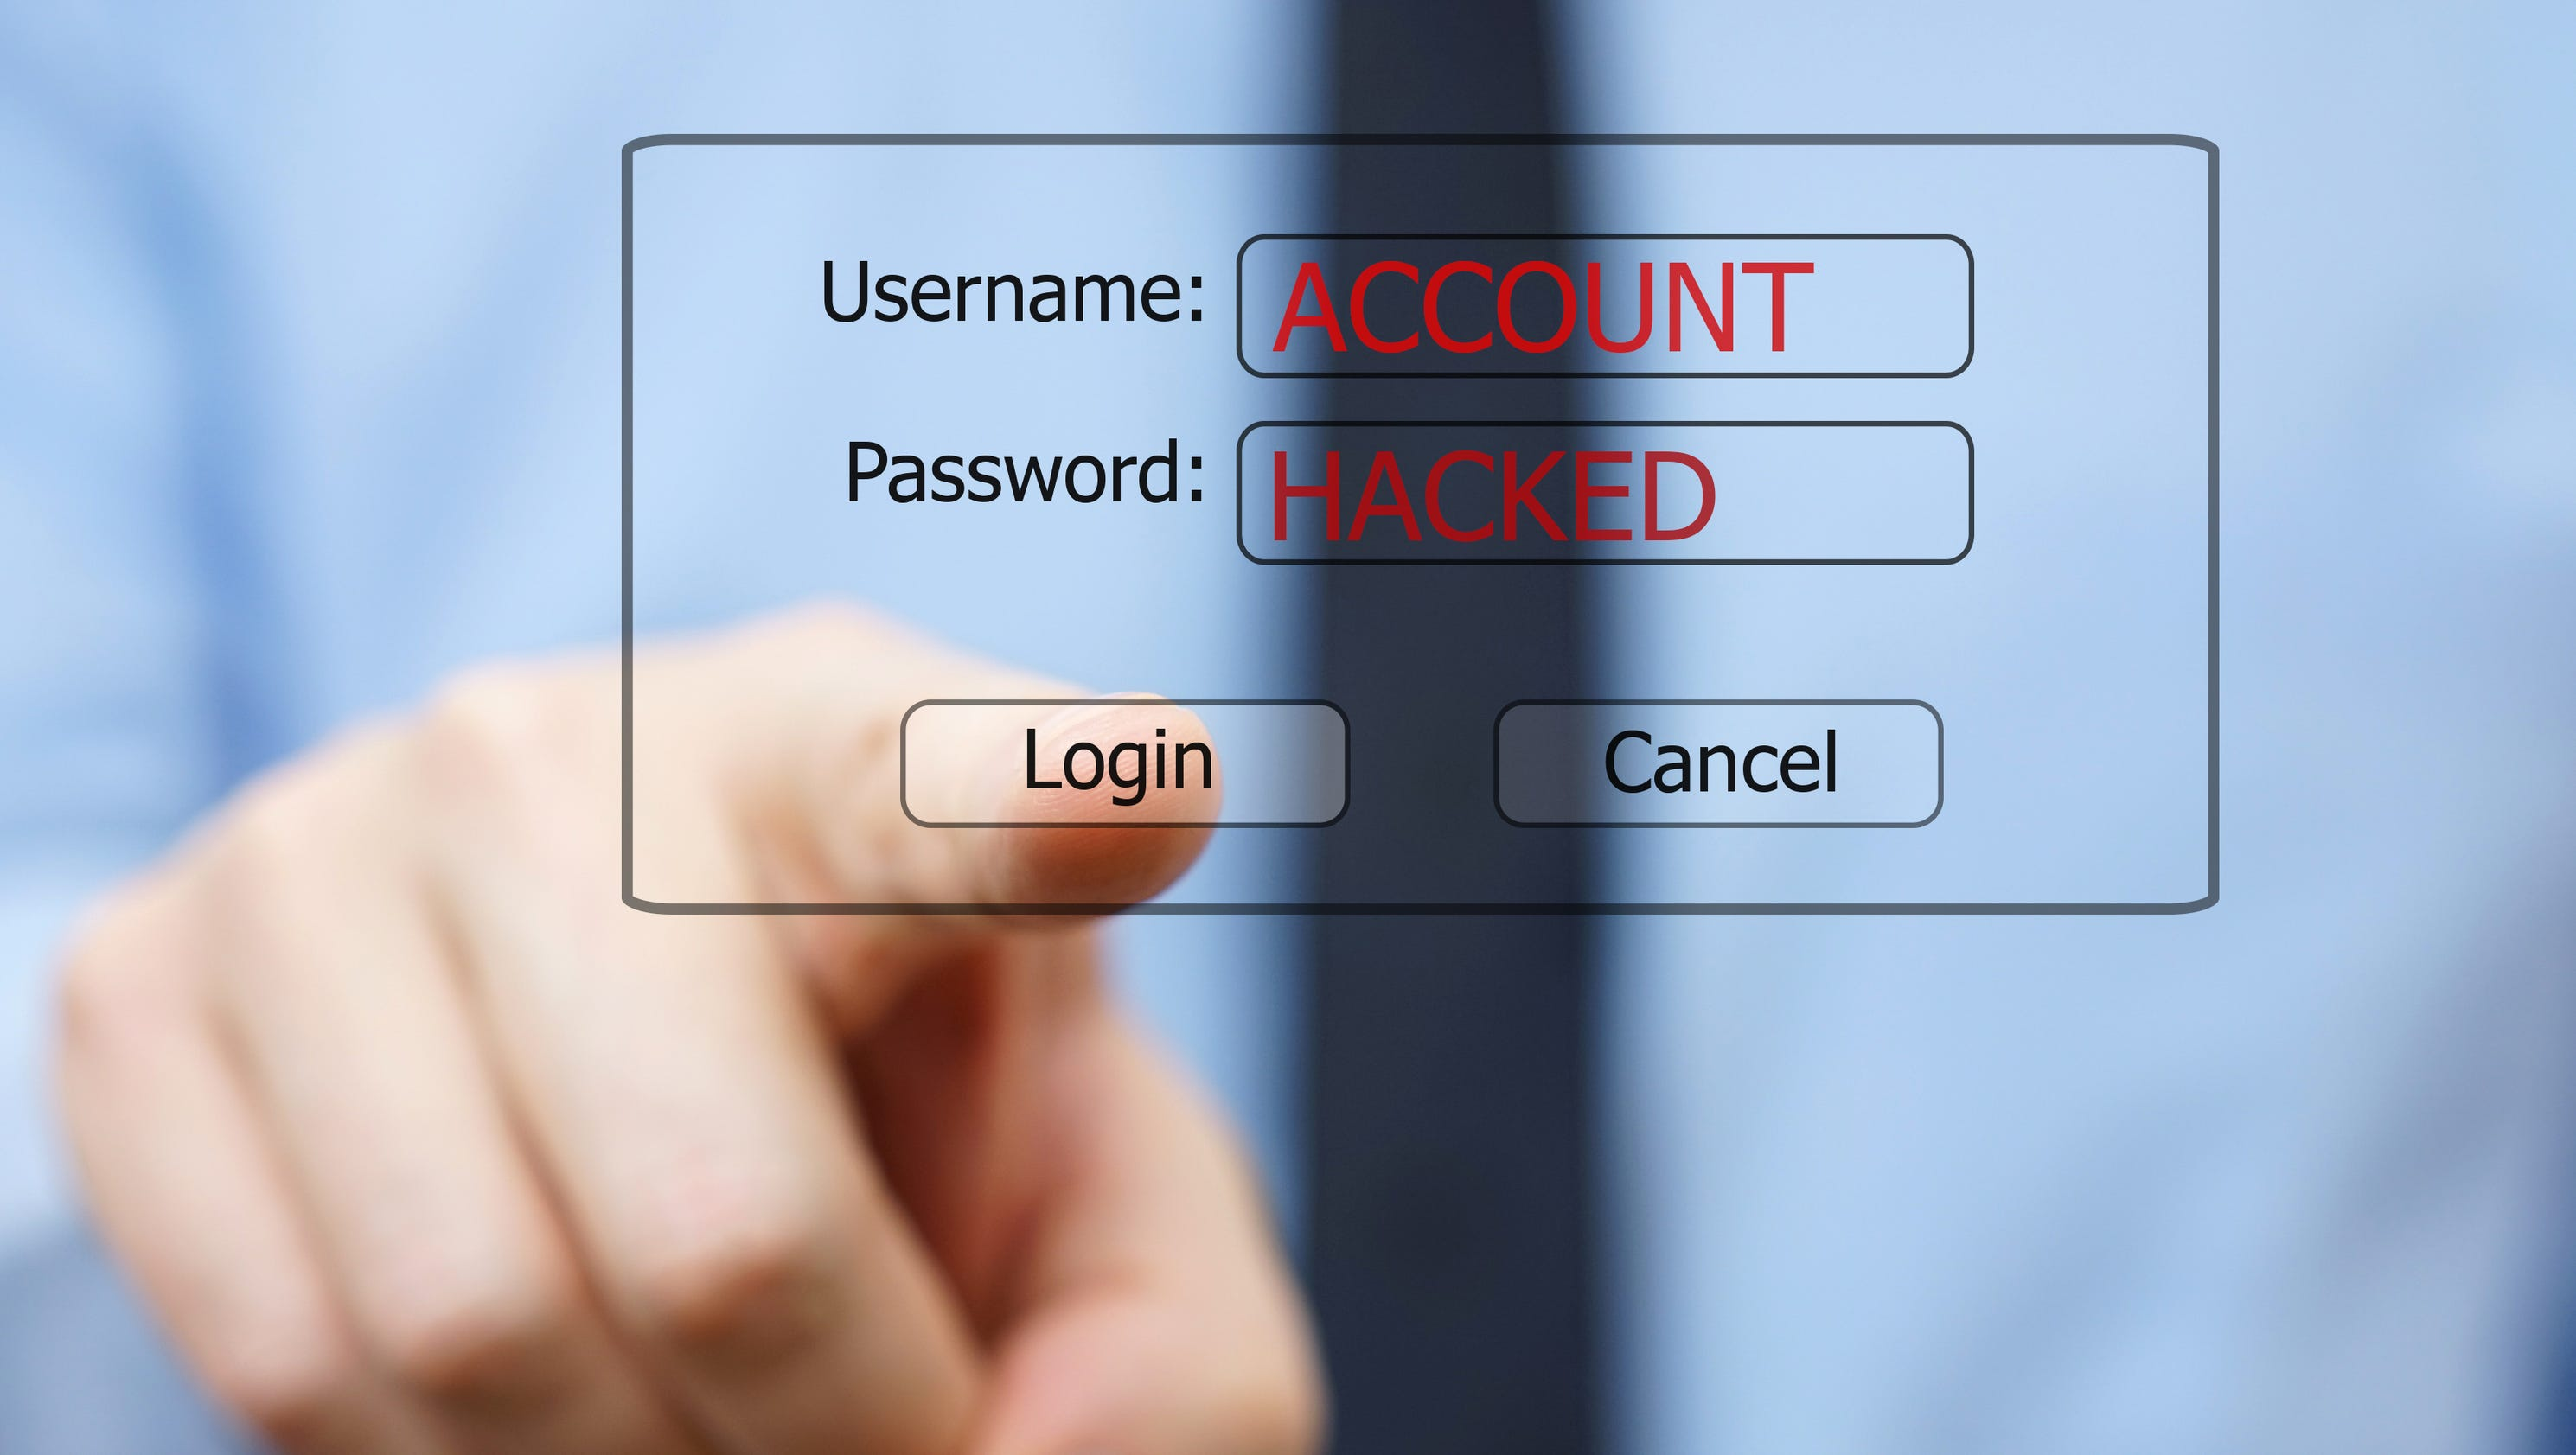 Email is an easy target for hackers; don't make it easier ...